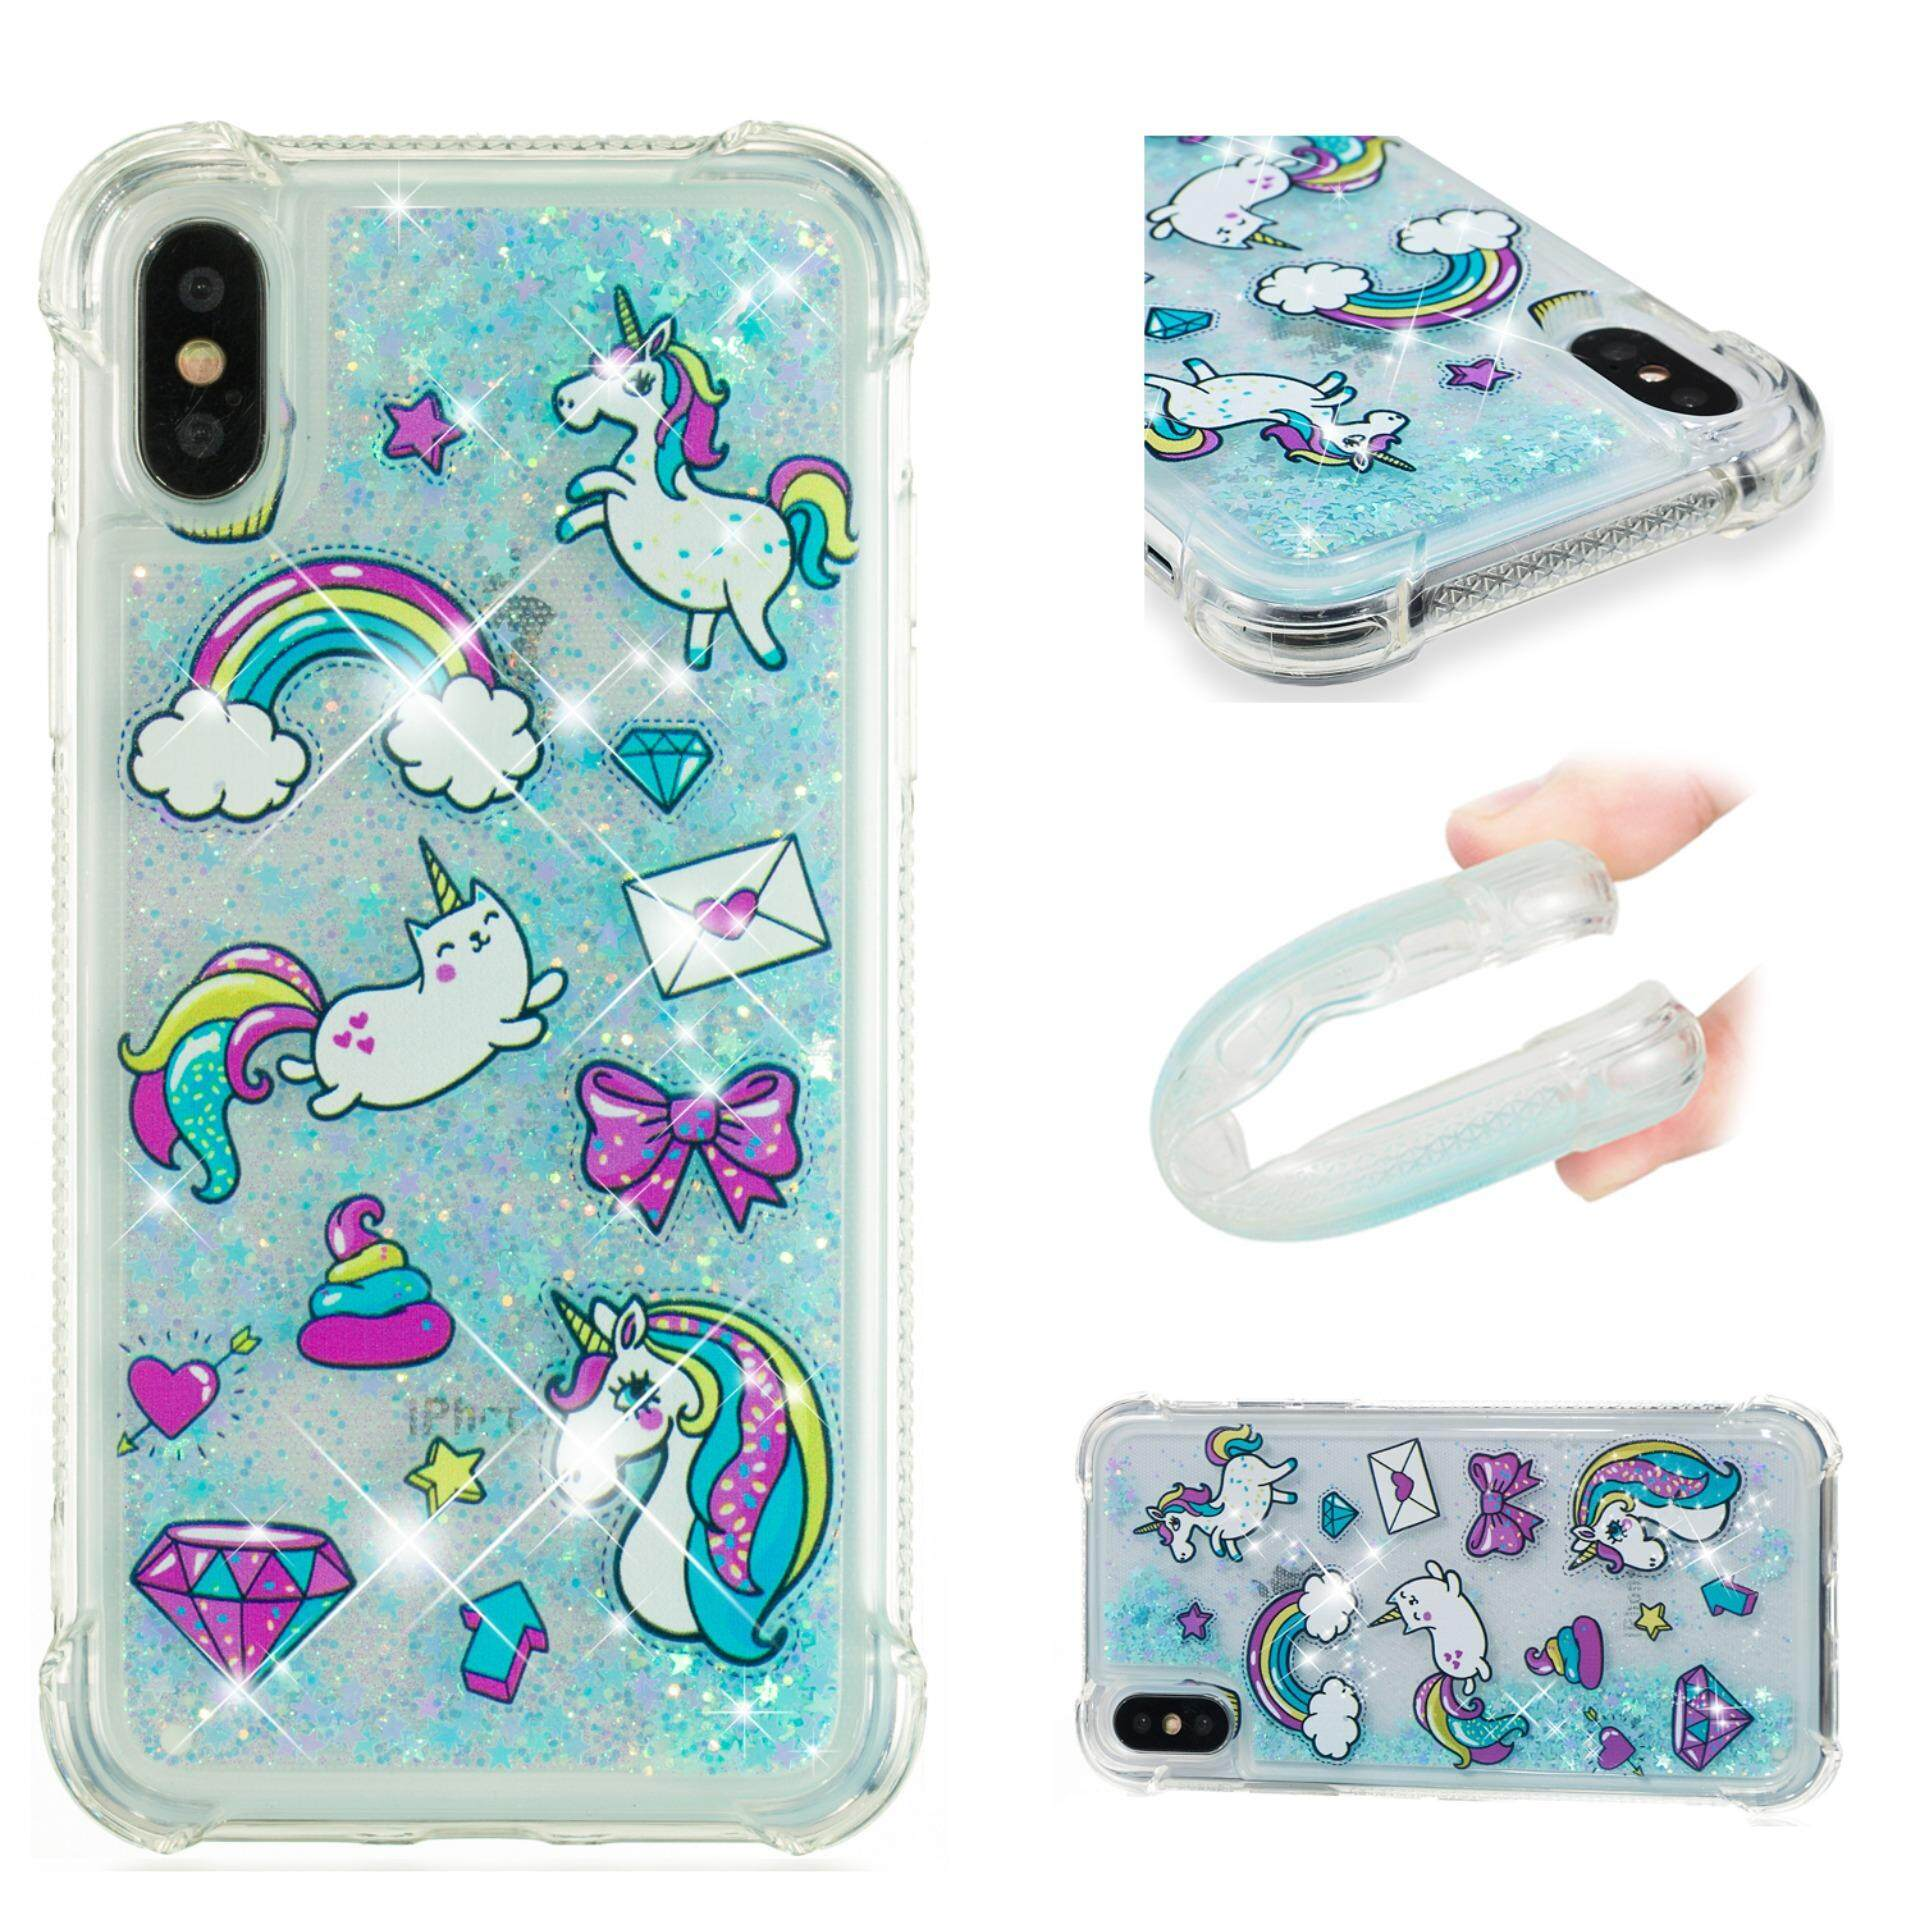 Case Air Source Harga Softcase Ultrathin for Vivo Y35 Putih Clear Source Sticla securizata. Source. ' -60%